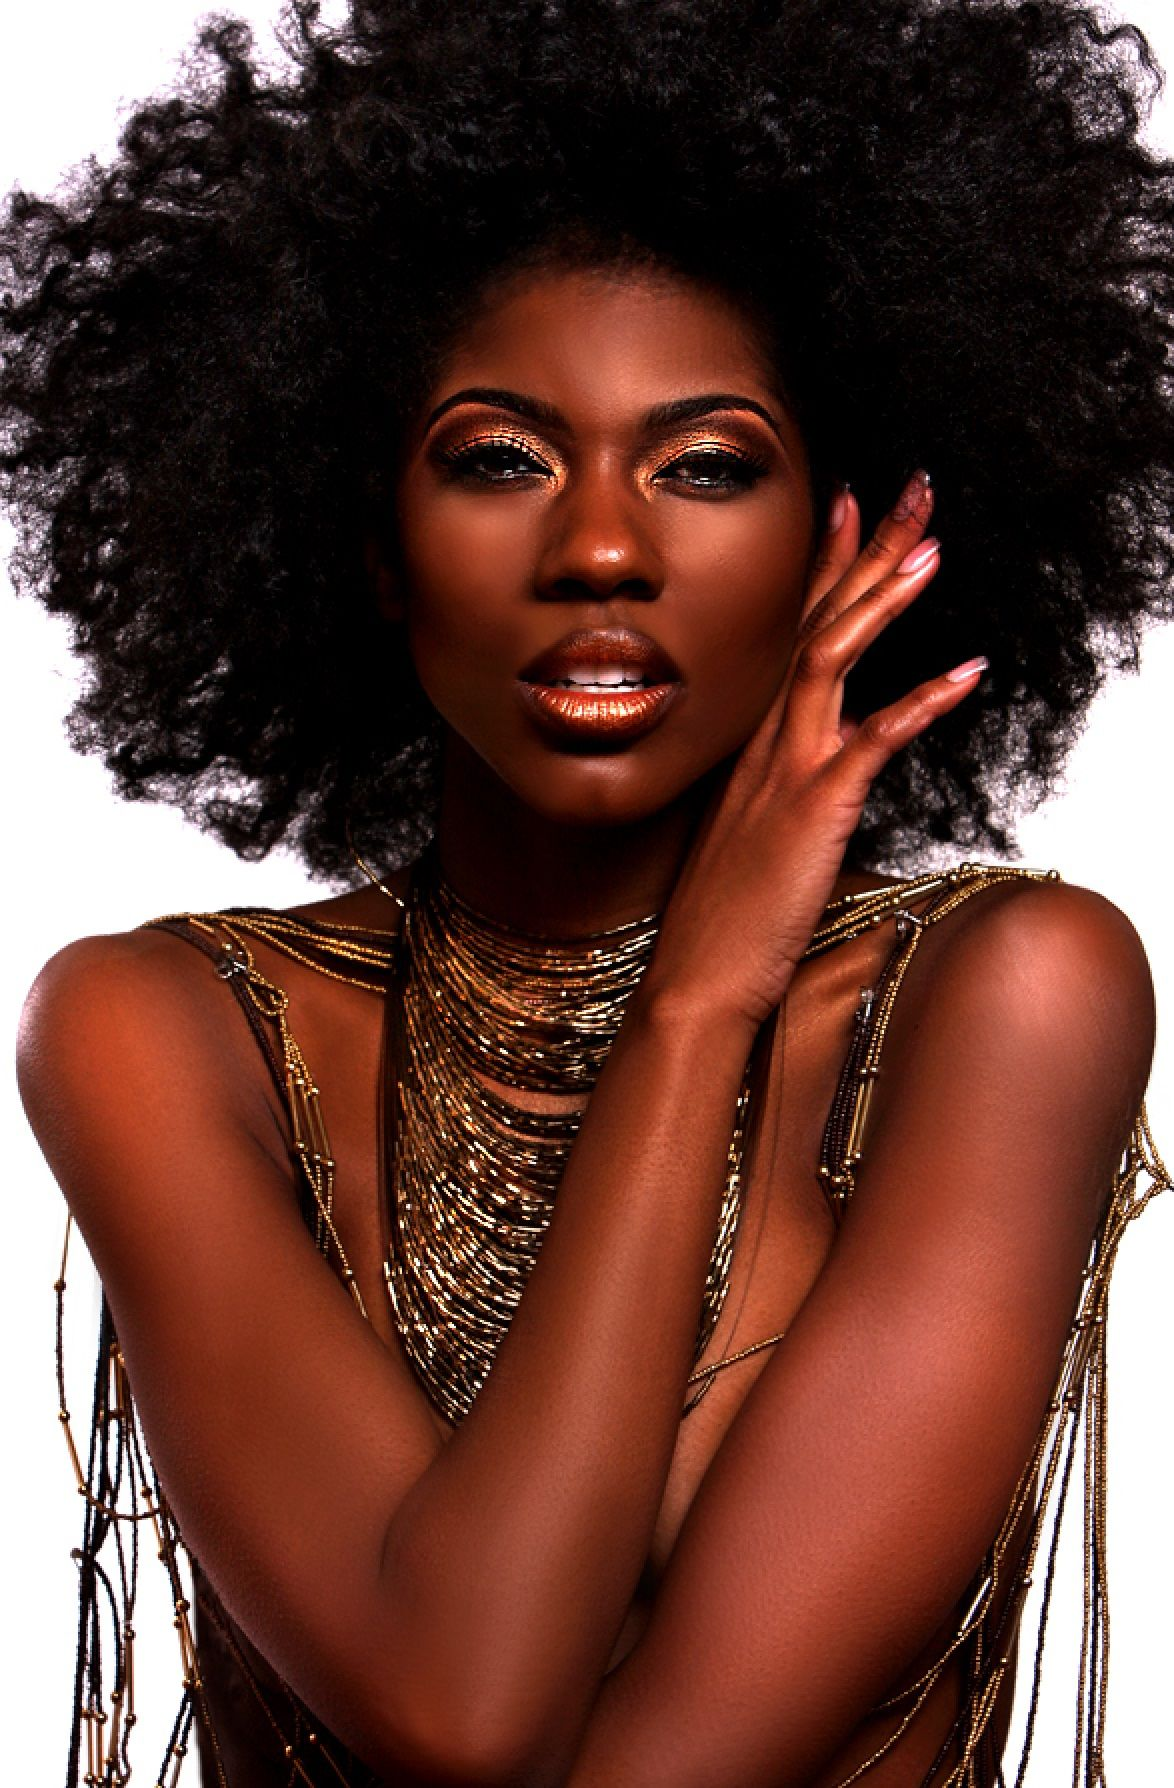 Beautiful black ladies photo beautiful women pinterest black